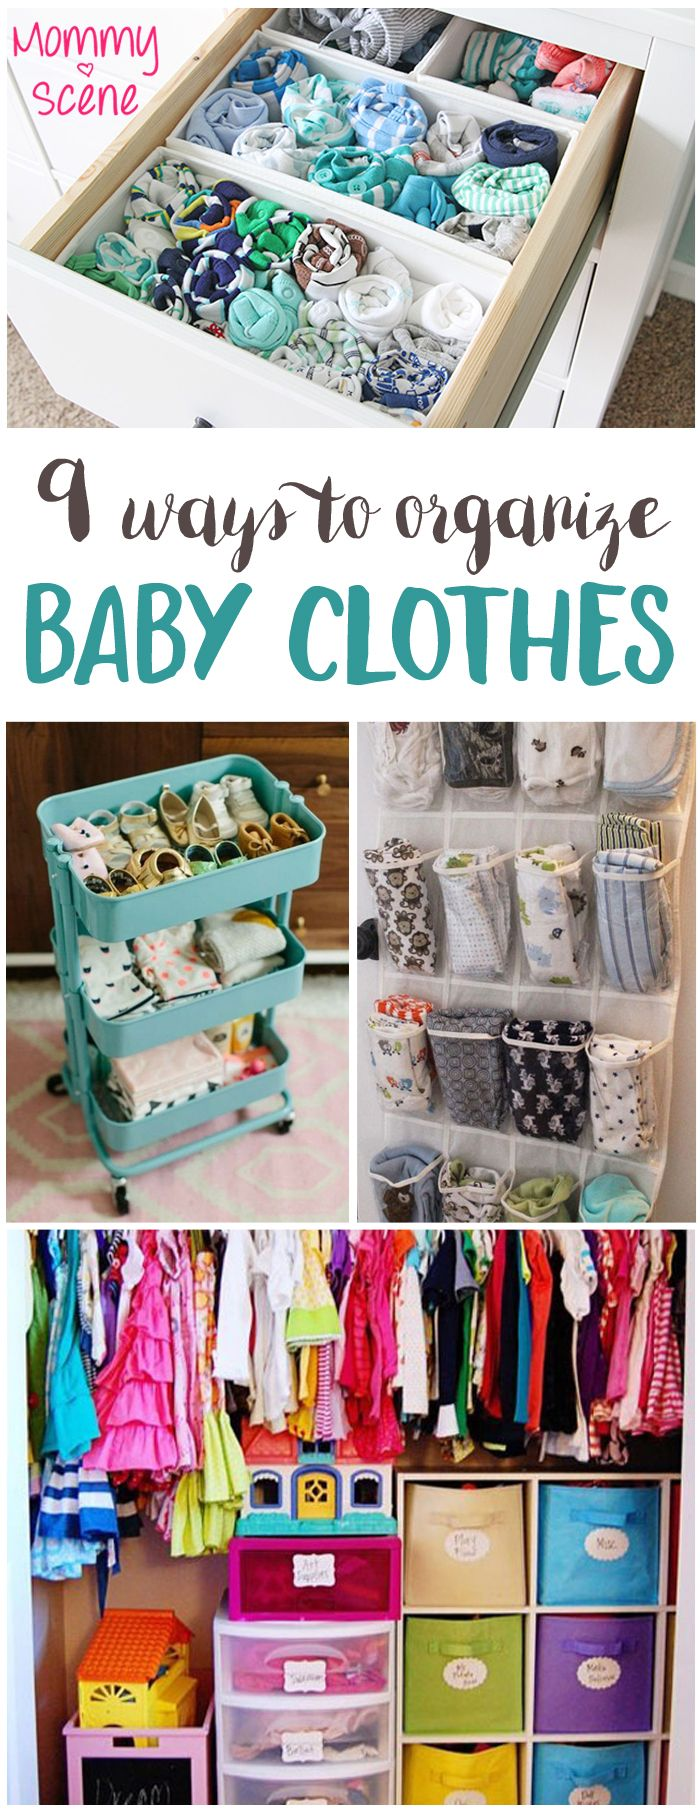 9 ways to organize baby clothes baby clothes storage